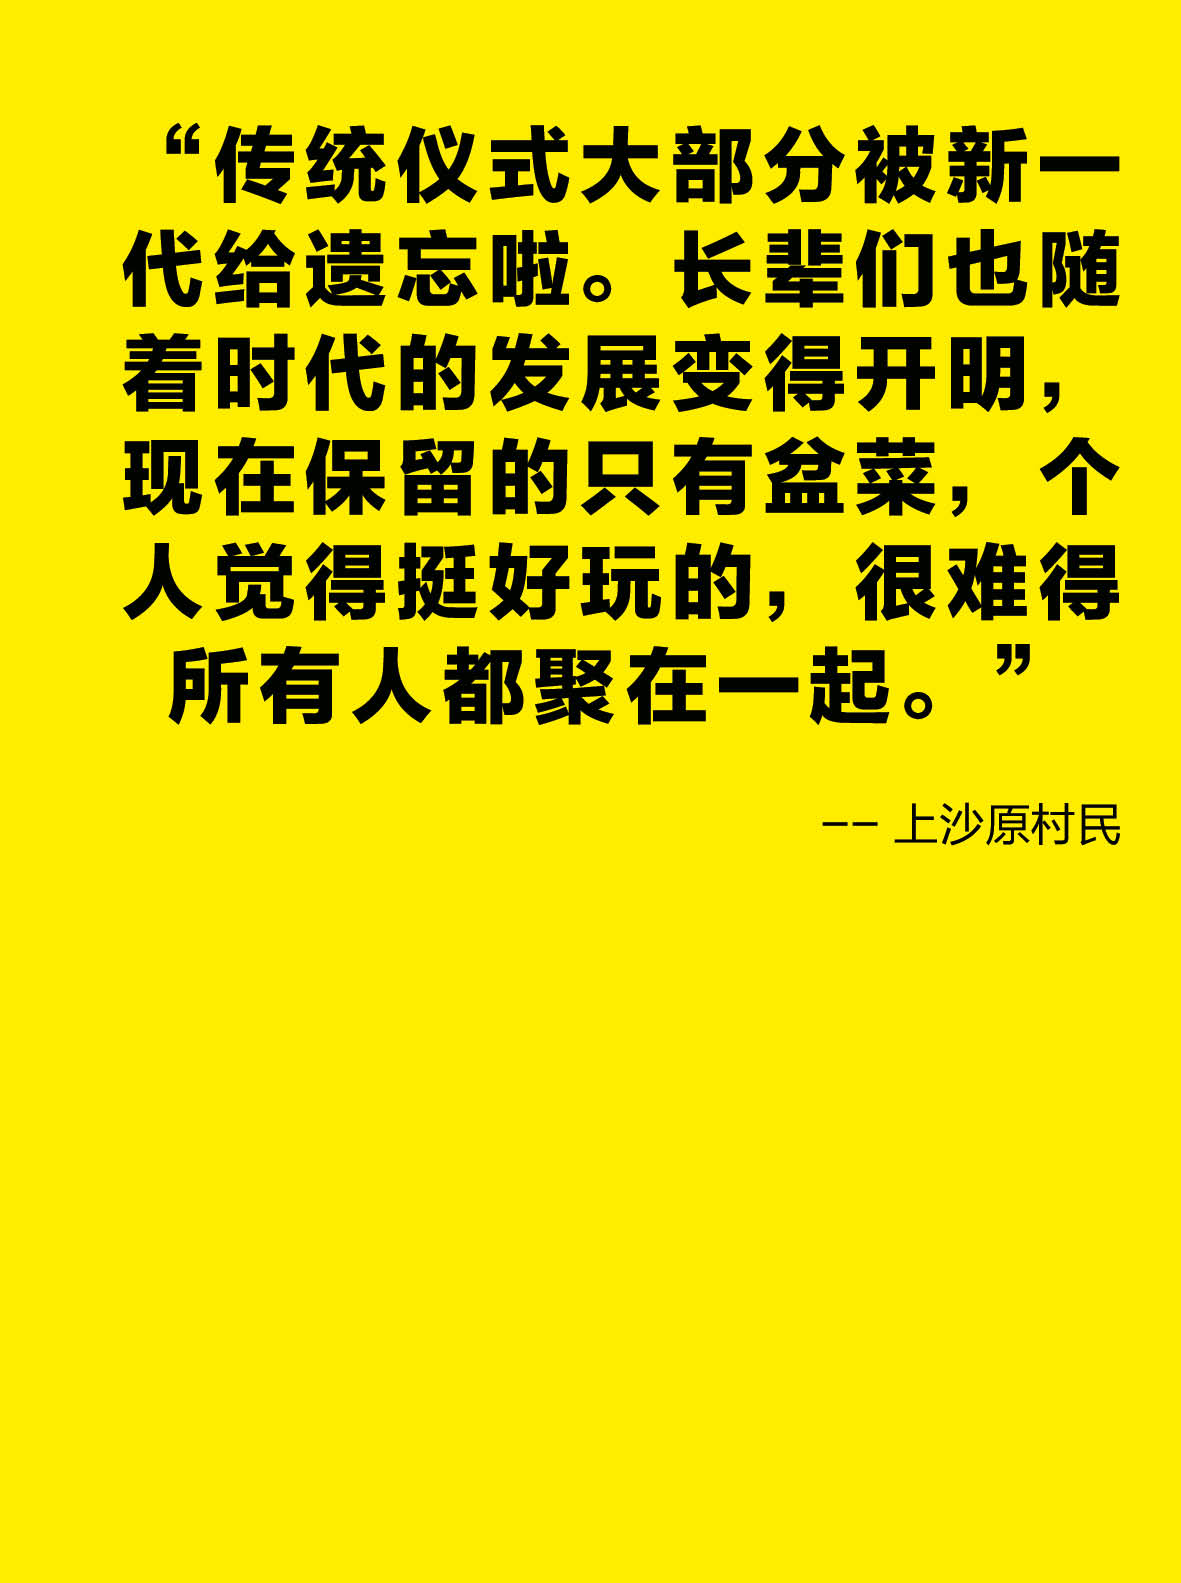 20180106_Shangsha Quotes test0321.jpg